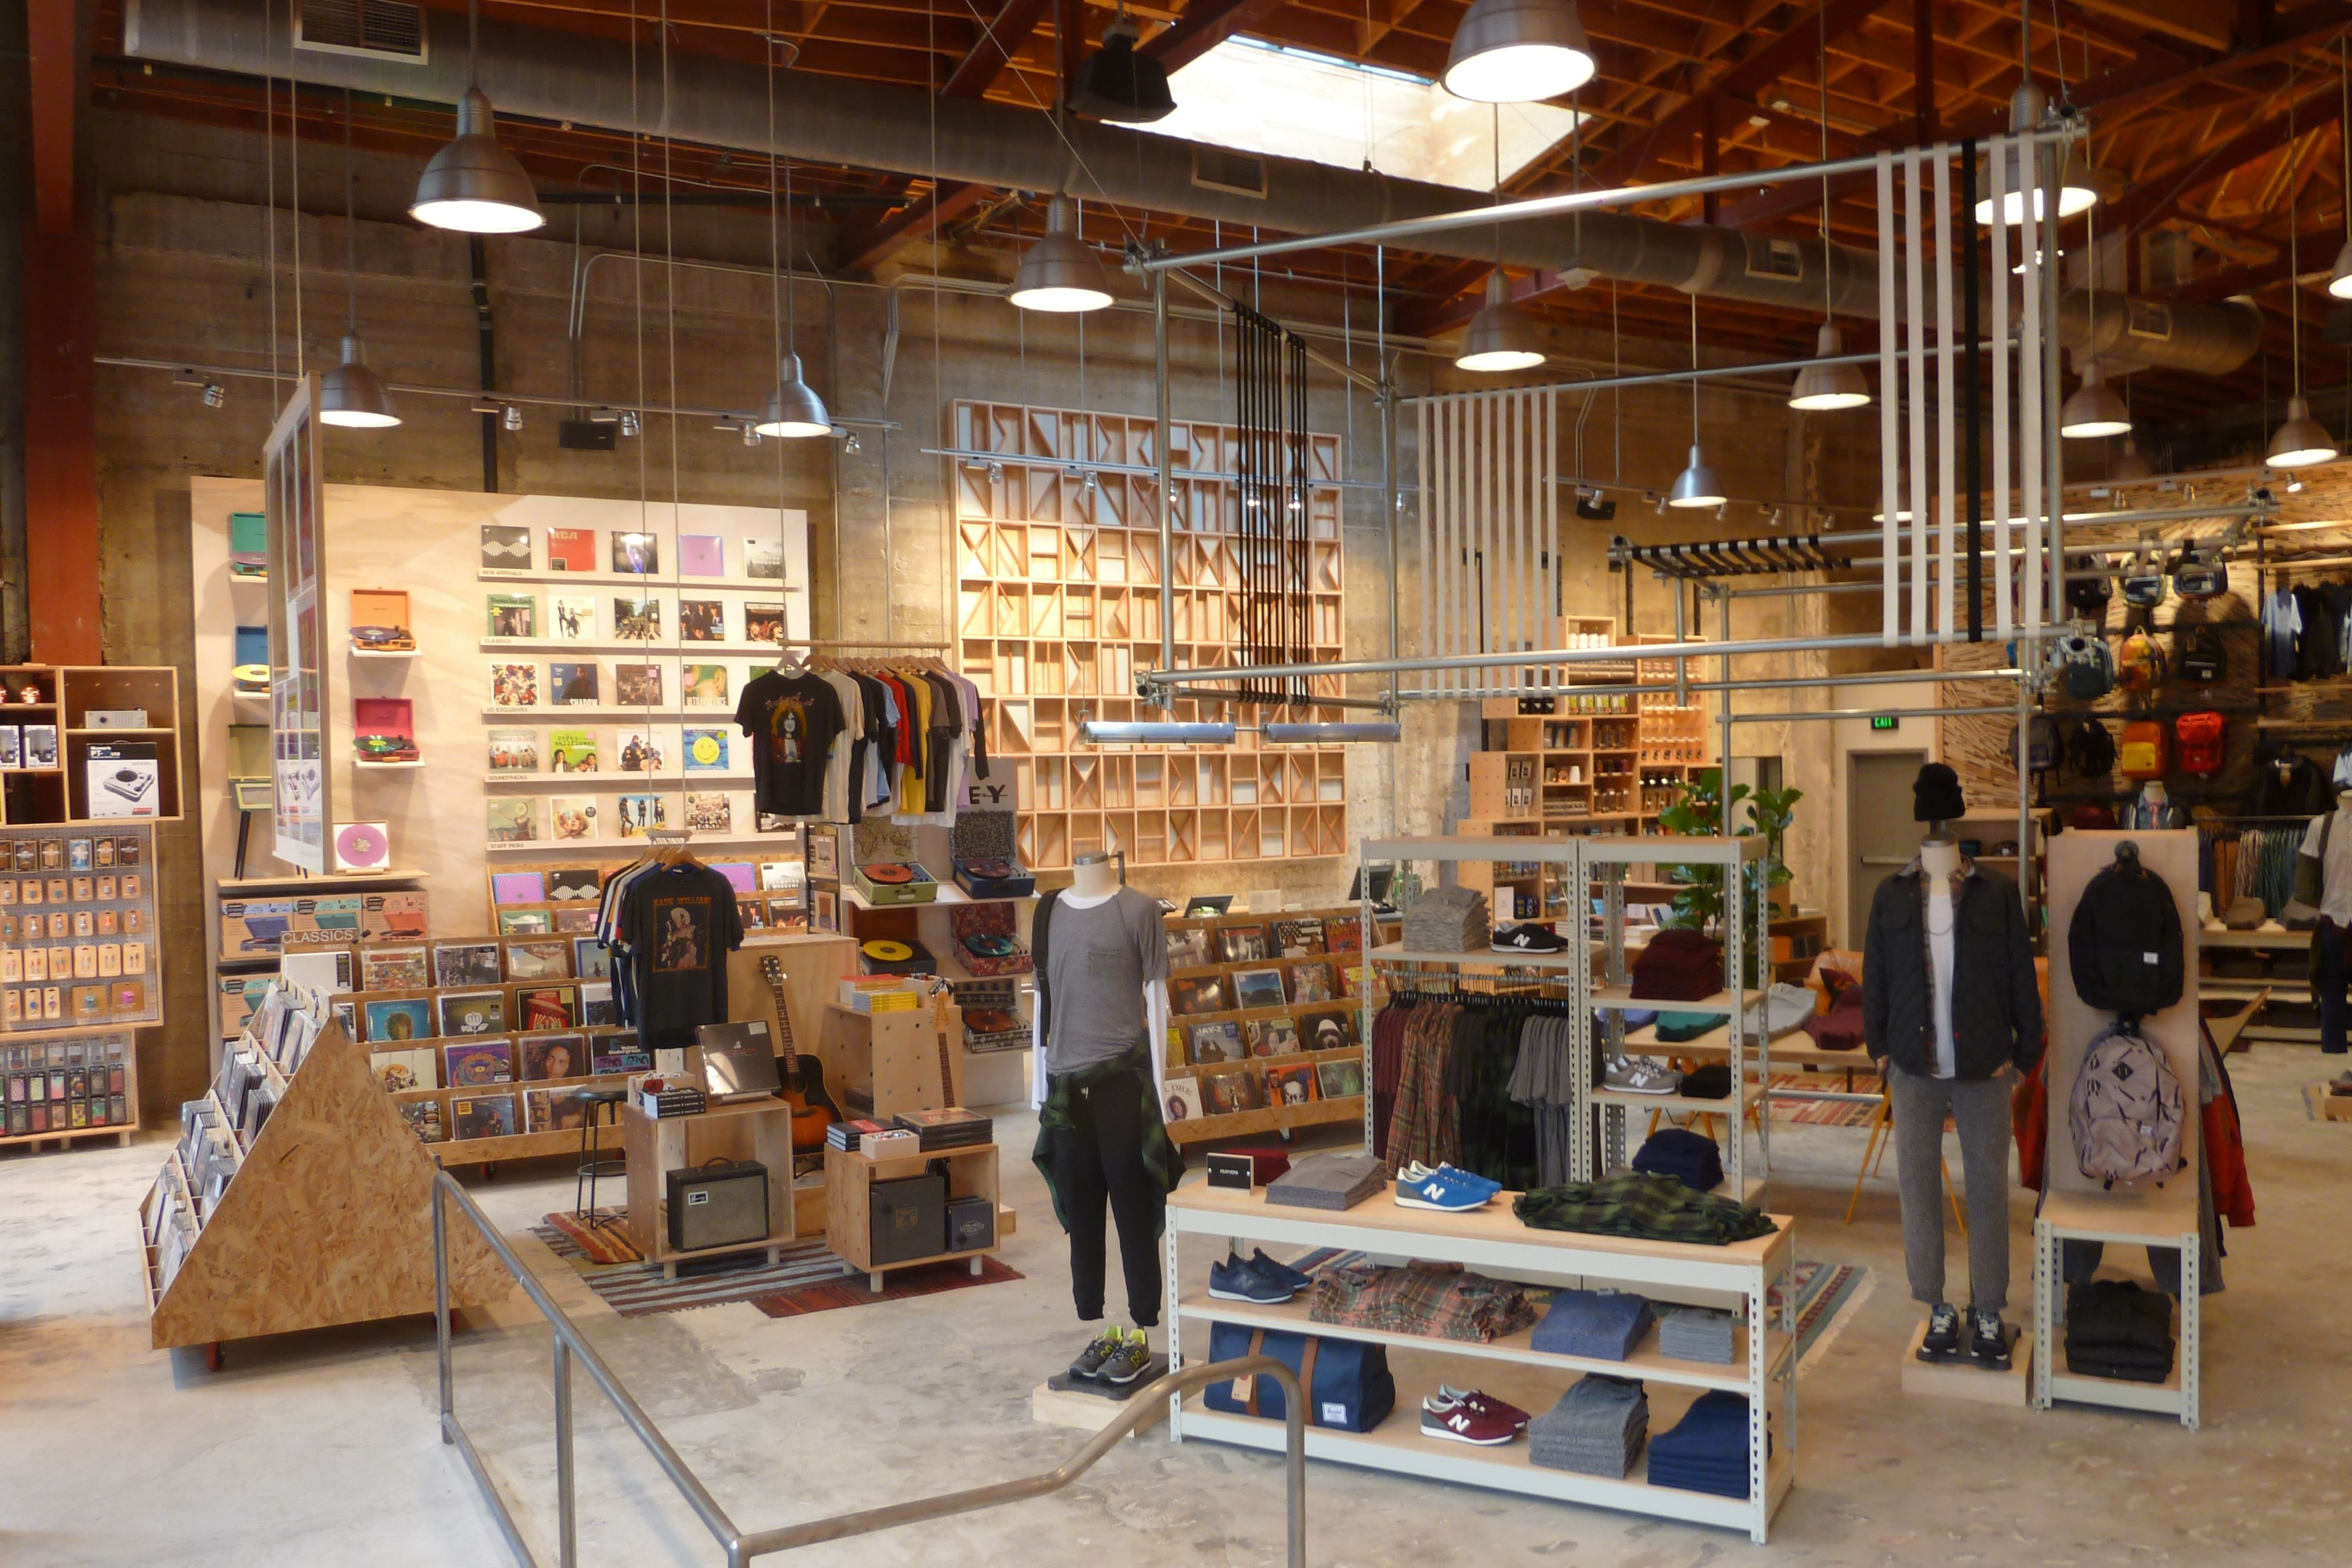 Exclusive: Urban Outfitters invokes 'force majeure' terms